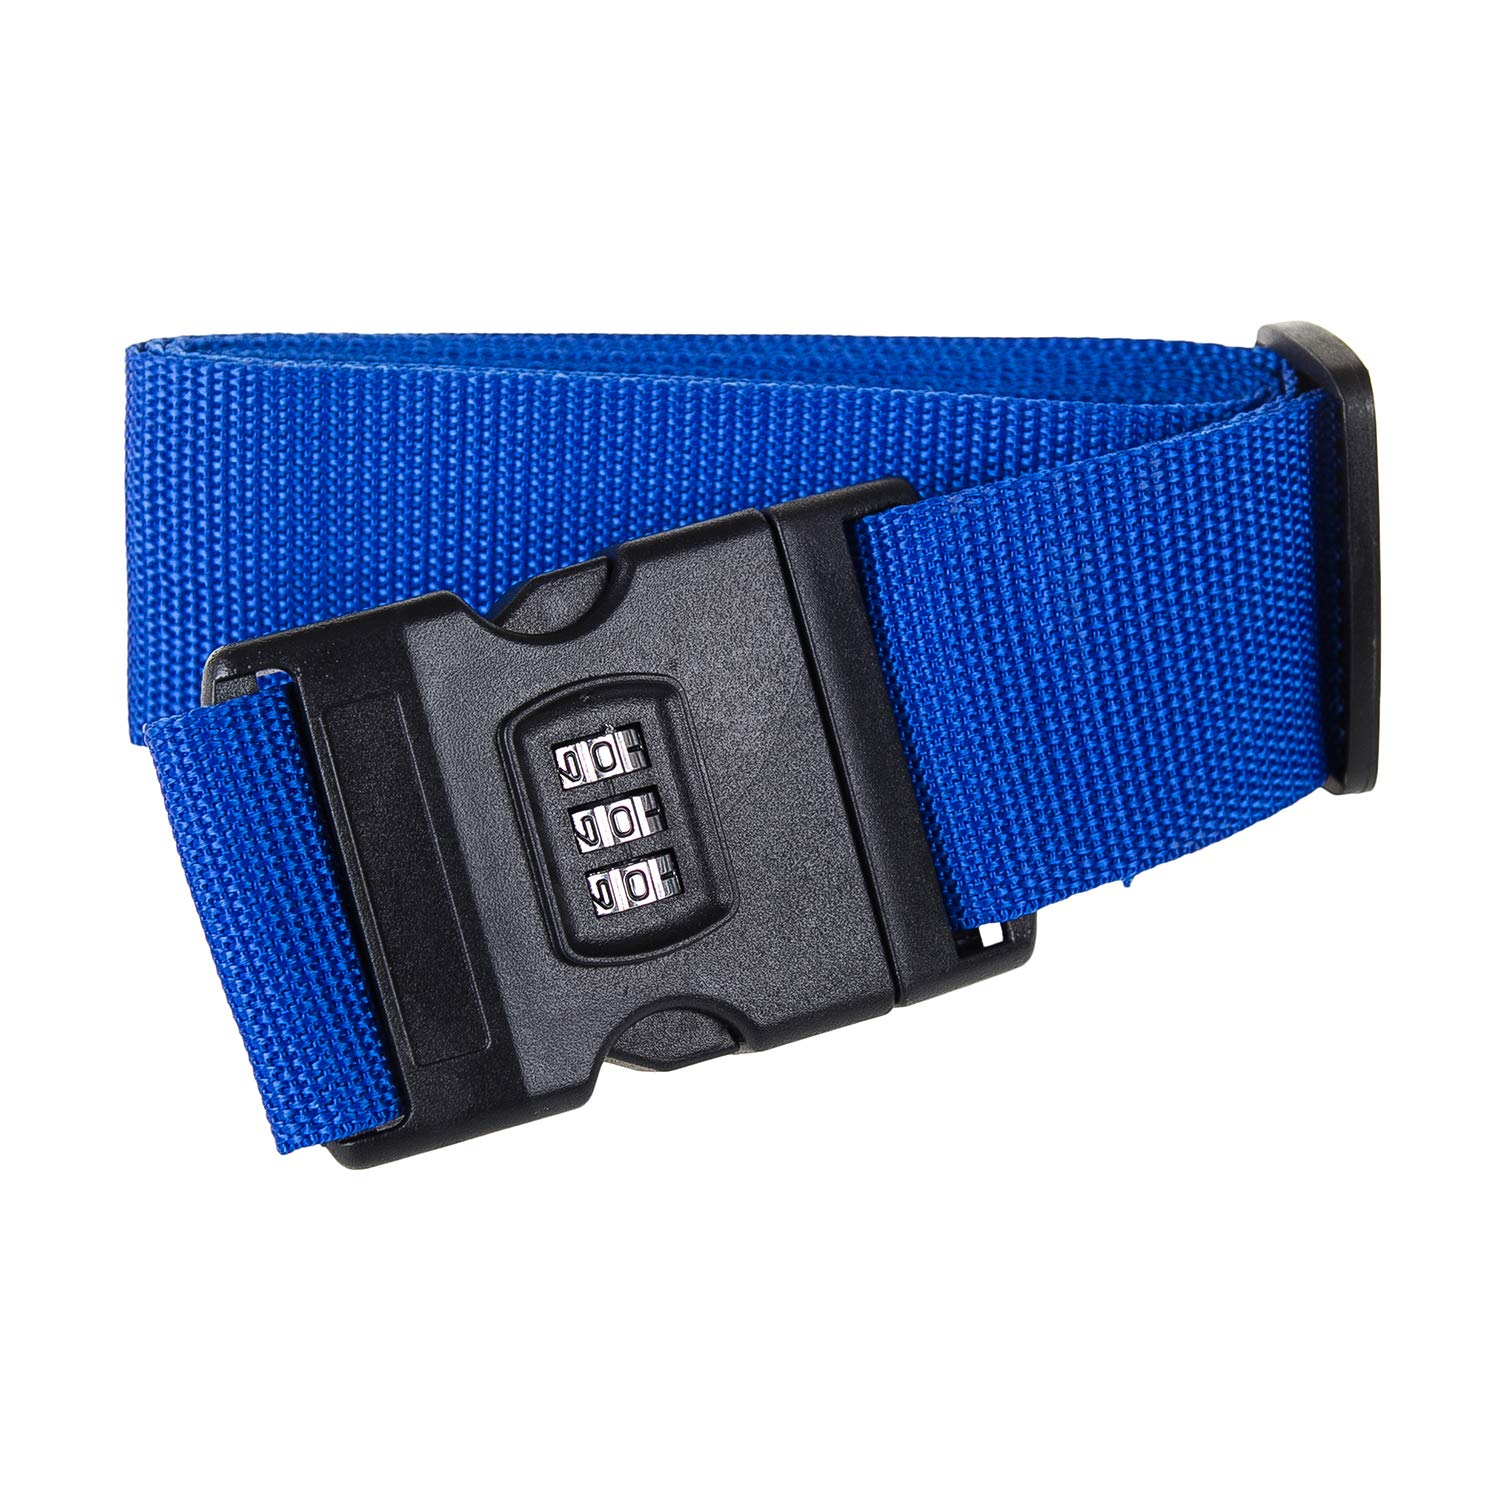 Adjustable Luggage Strap with Number Lock, Password Suitcase Belts Travel Belt Straps Baggage Packing Belt for Bags Luggage Security (Blue)